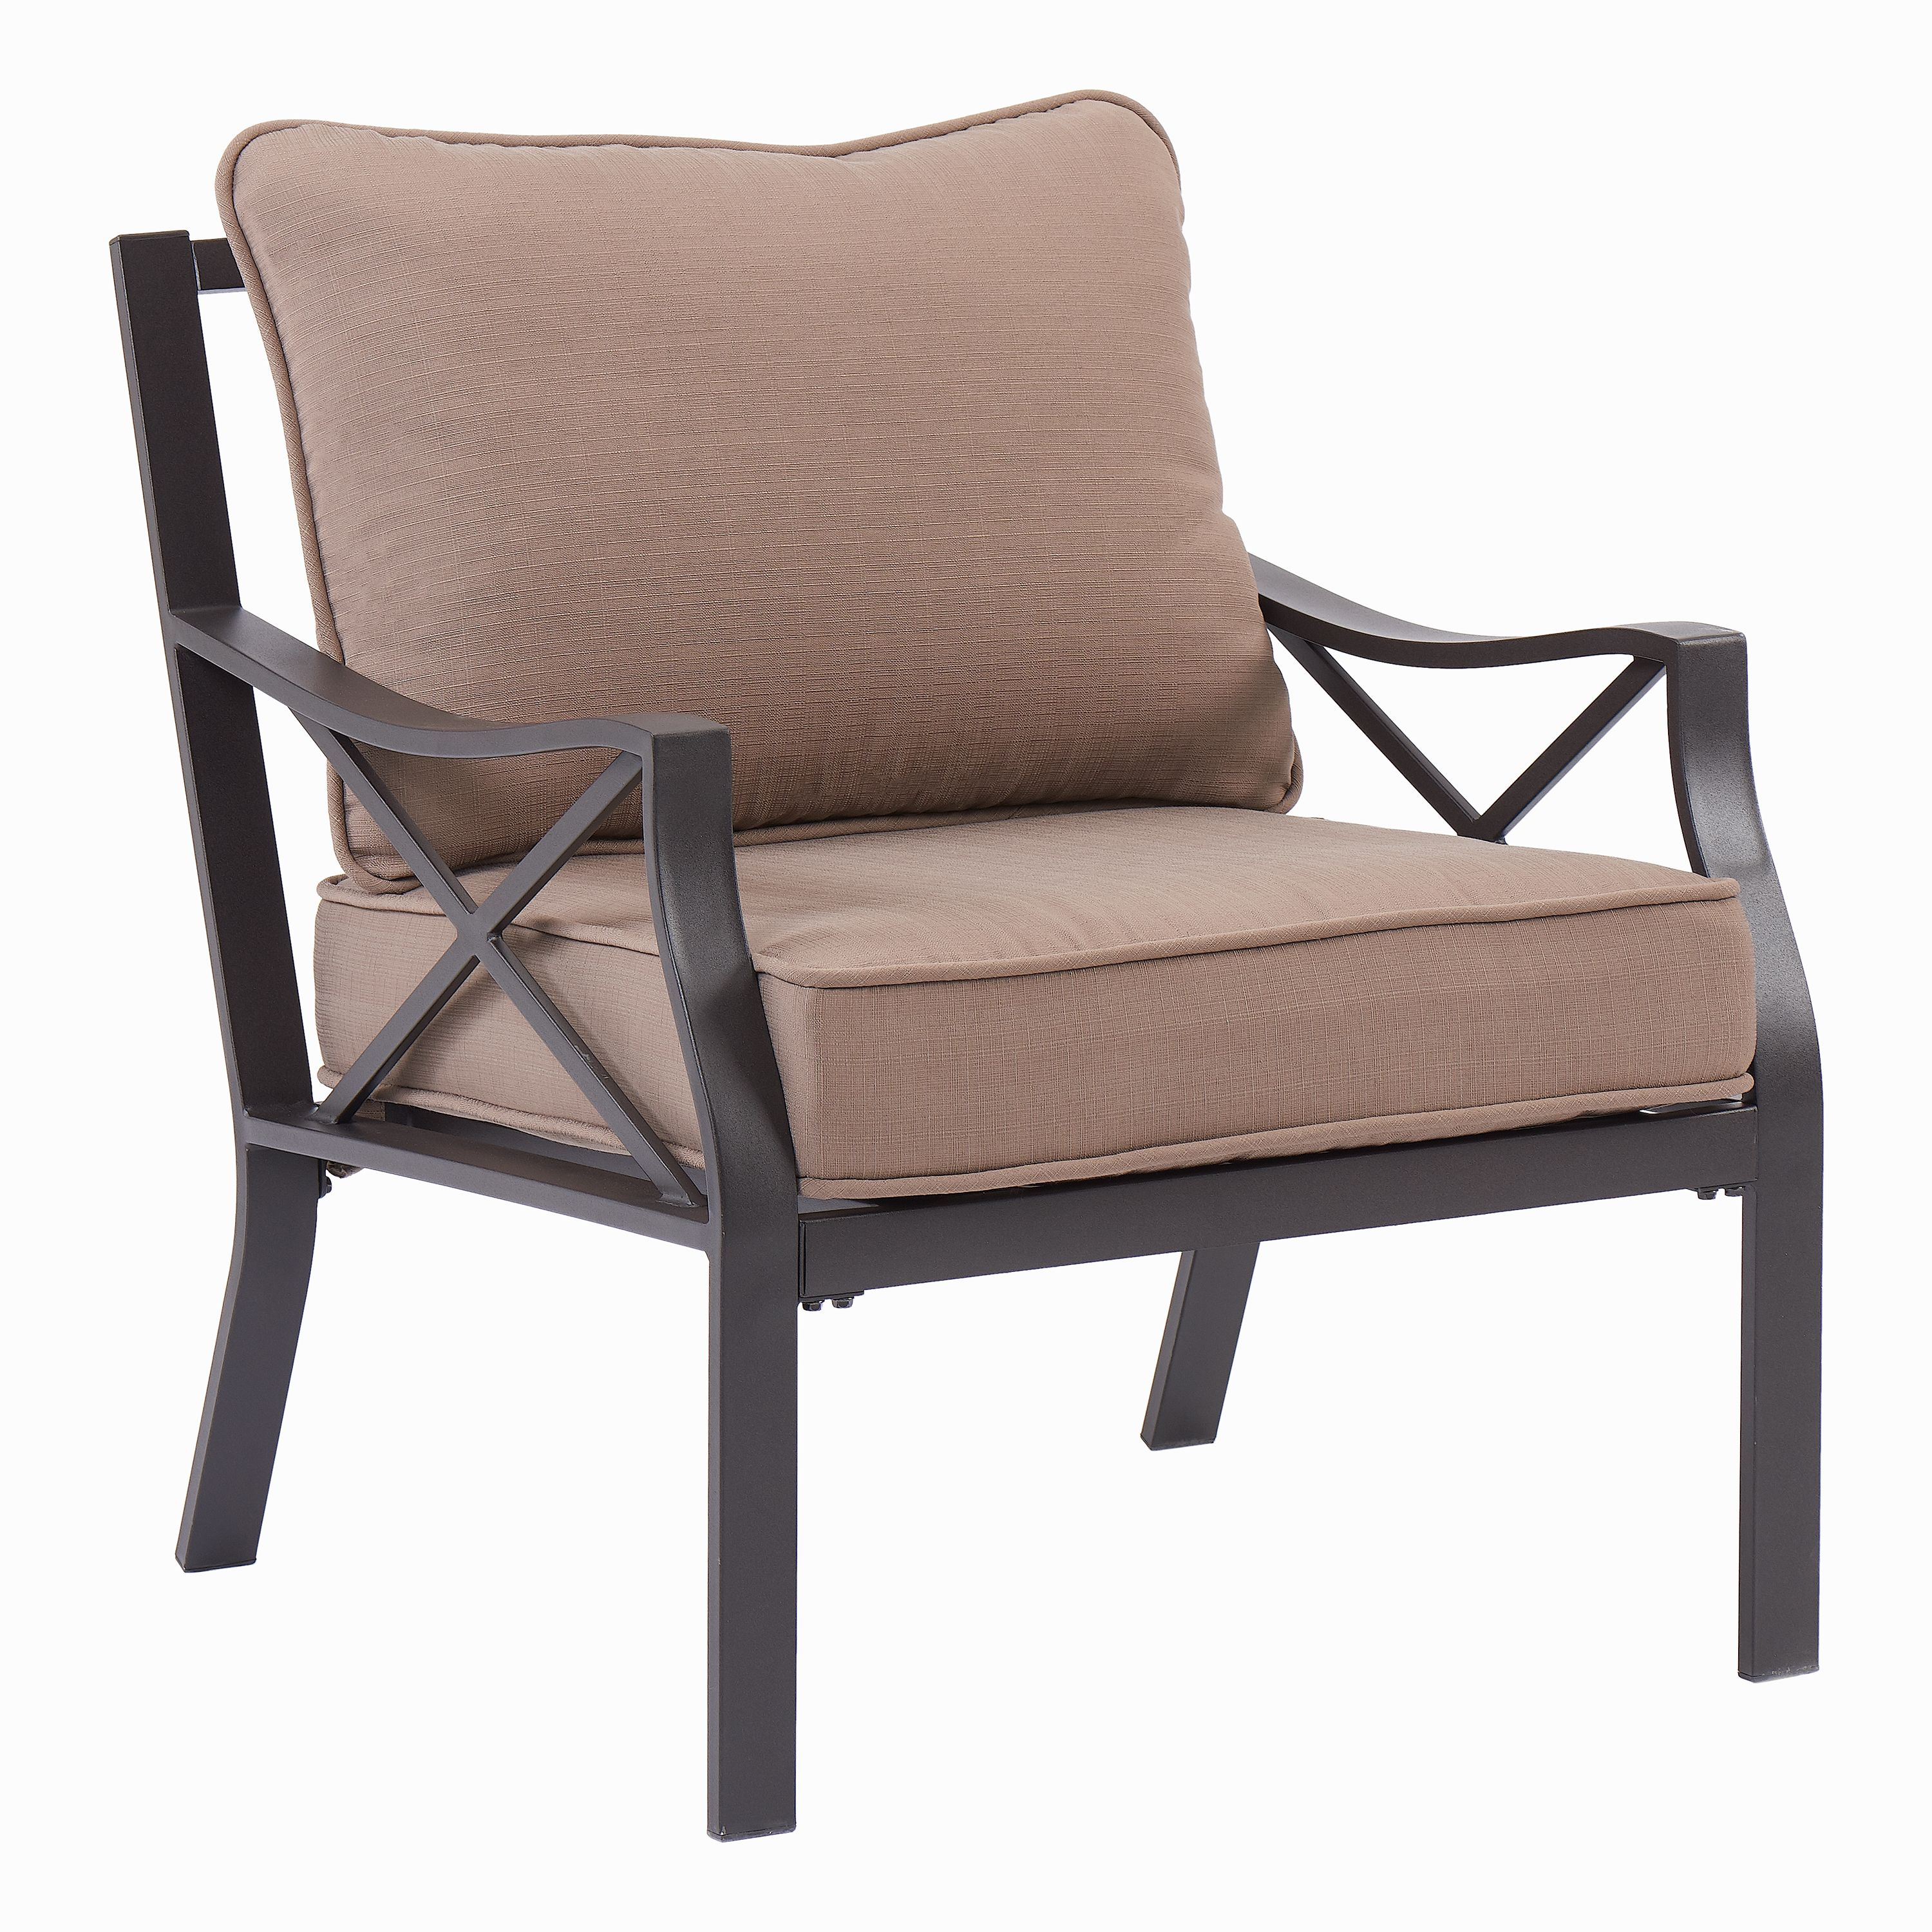 Mainstays Sandhill Patio Lounge Chairs with Mocha Cushions, Set of 2